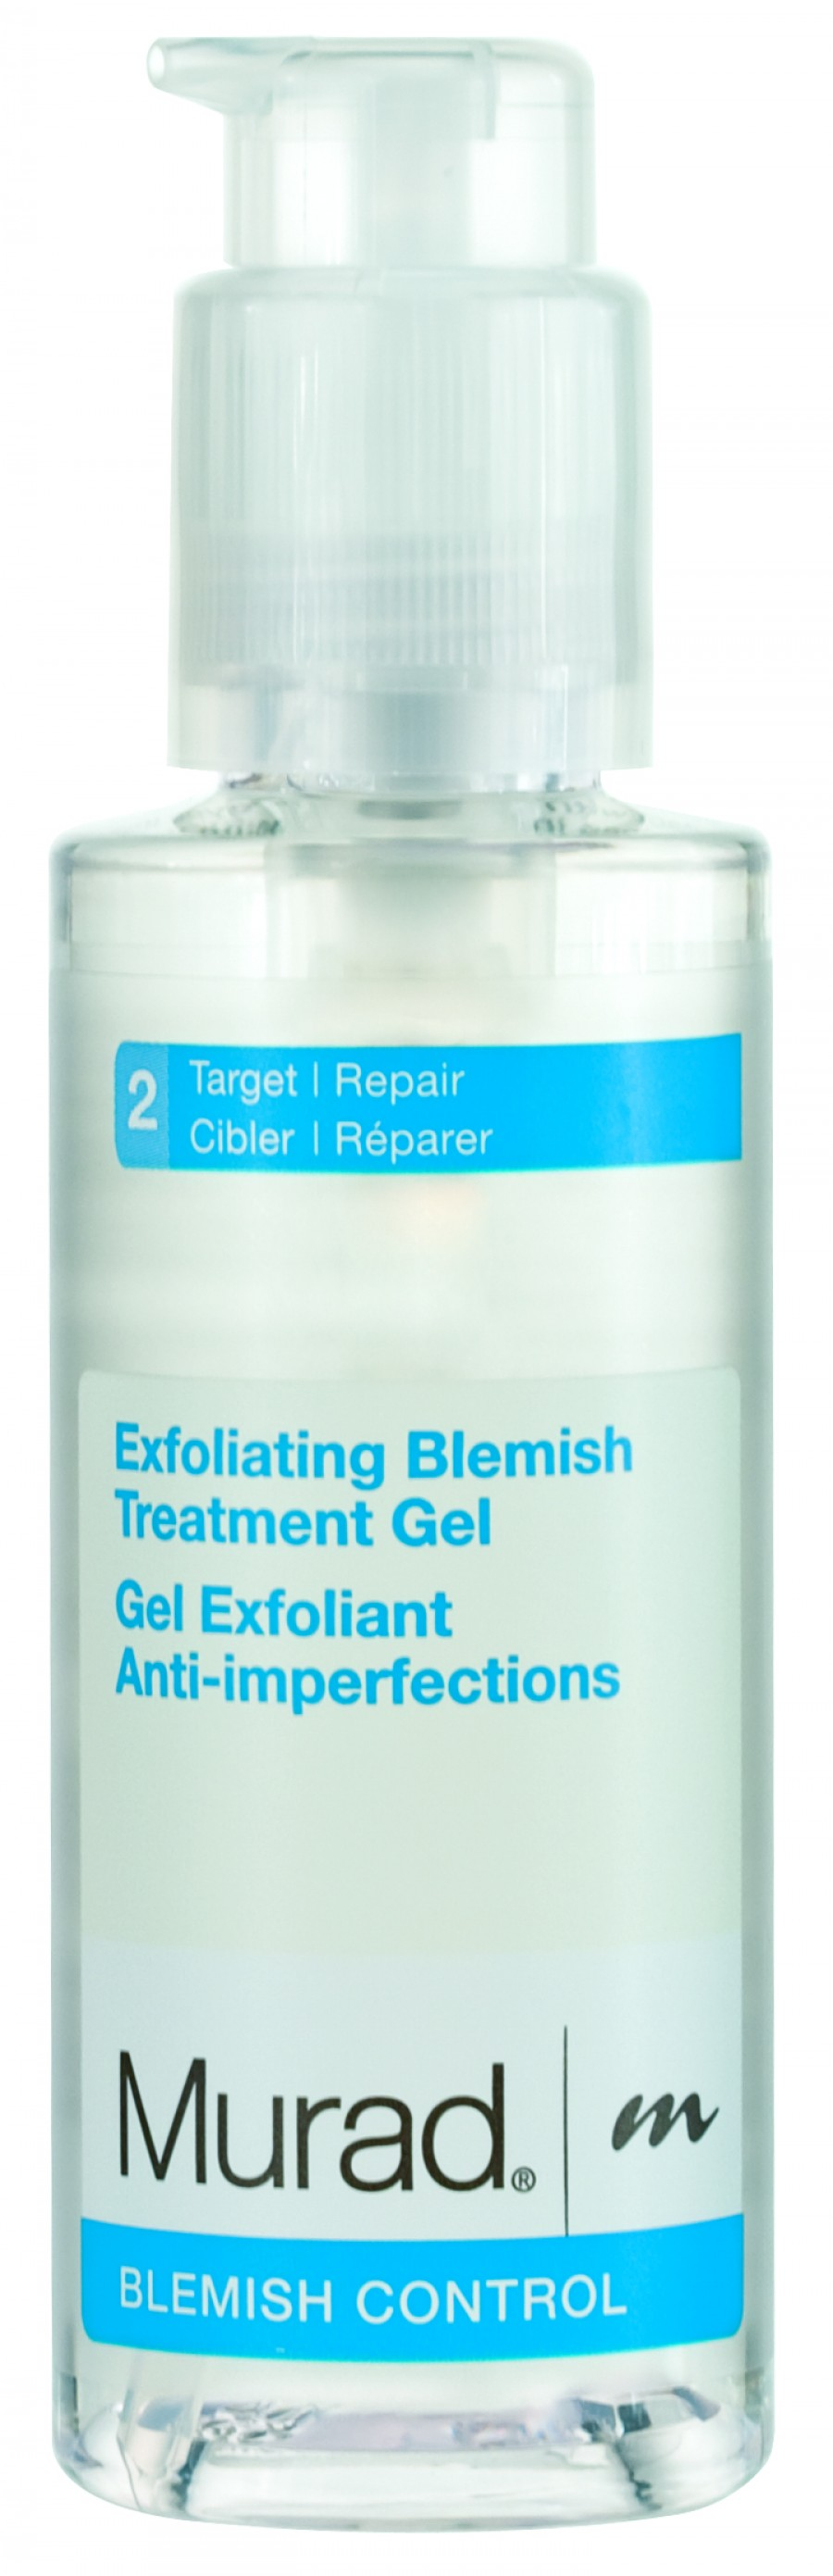 Murad_Blemish Treatment Gel